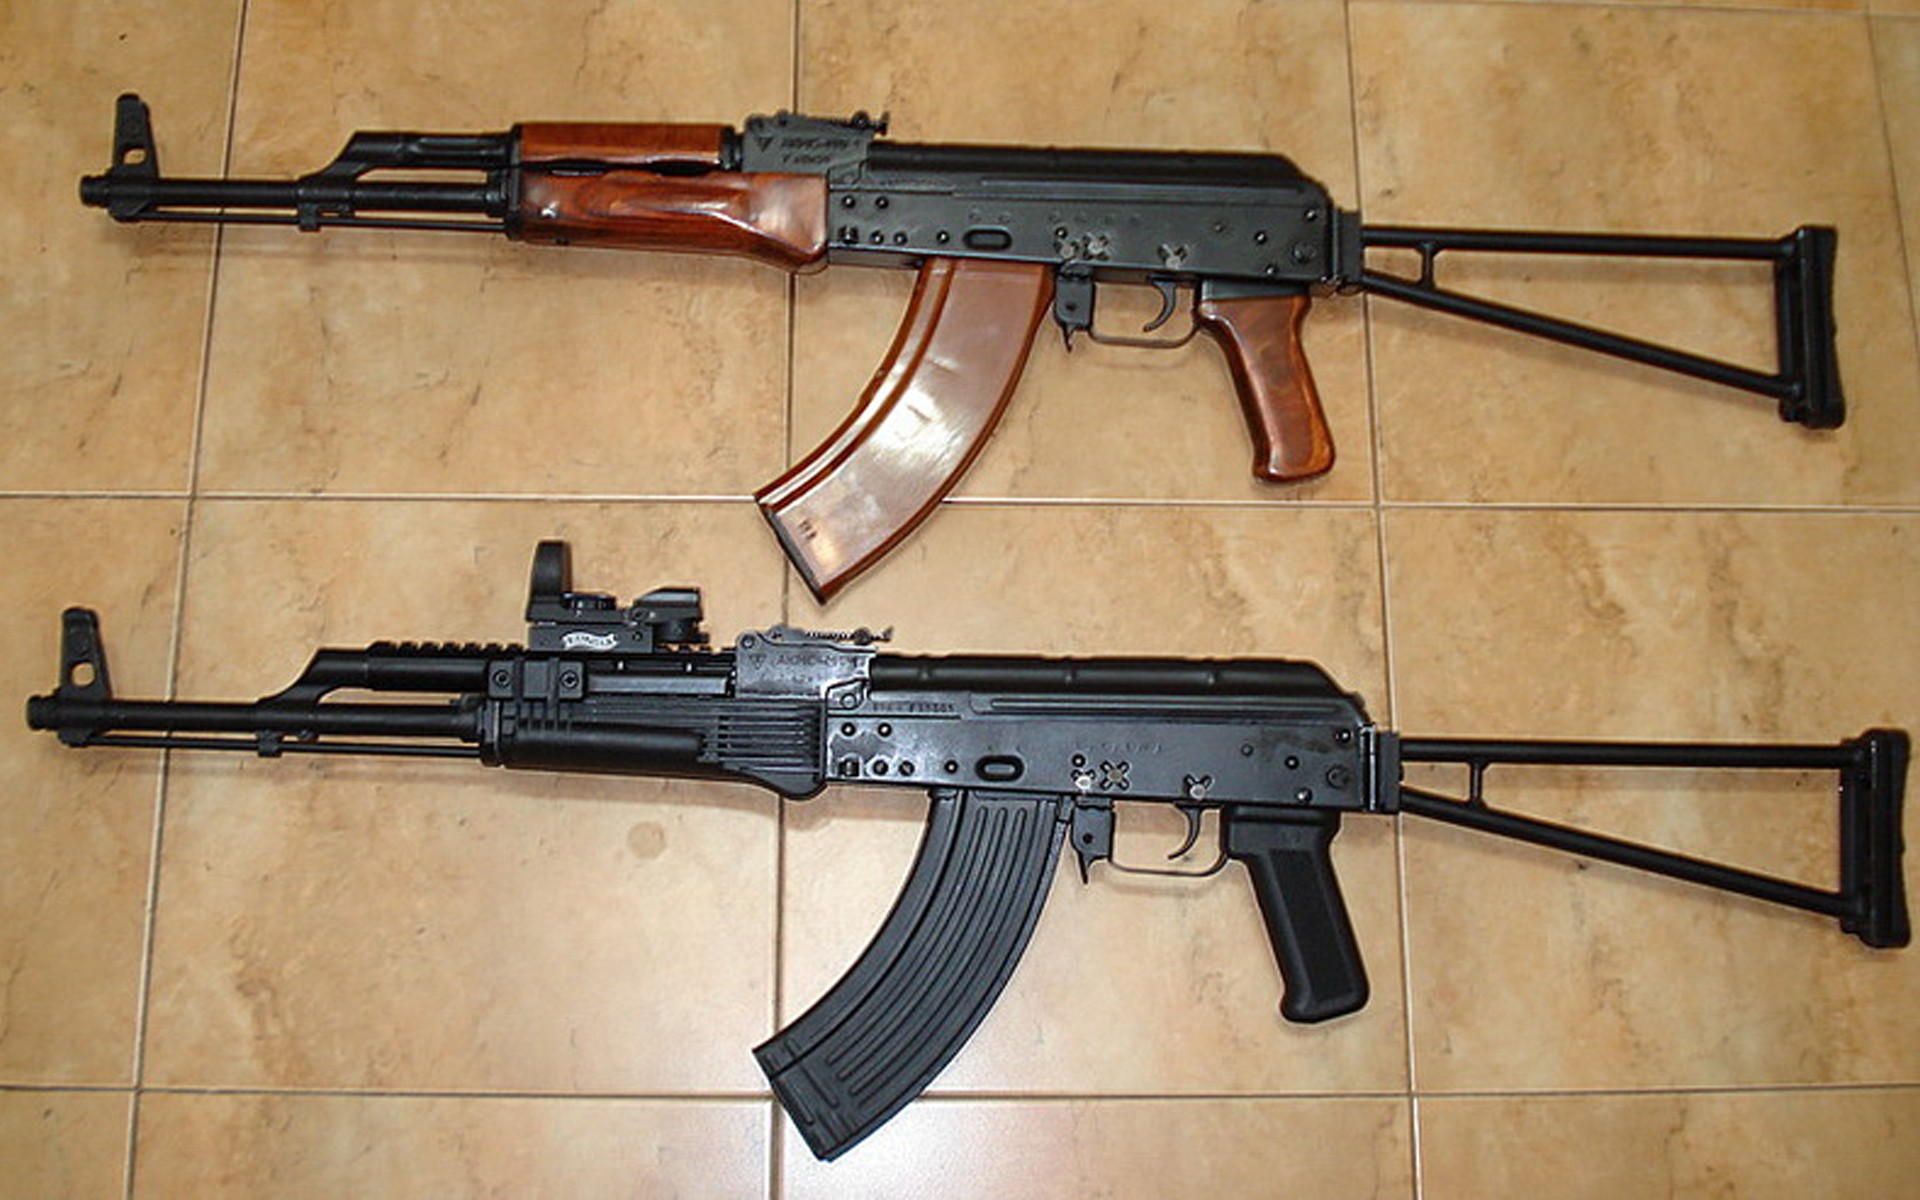 ak 47 wallpapers weapons hq ak 47 pictures 4k wallpapers 2019 ak 47 wallpapers weapons hq ak 47